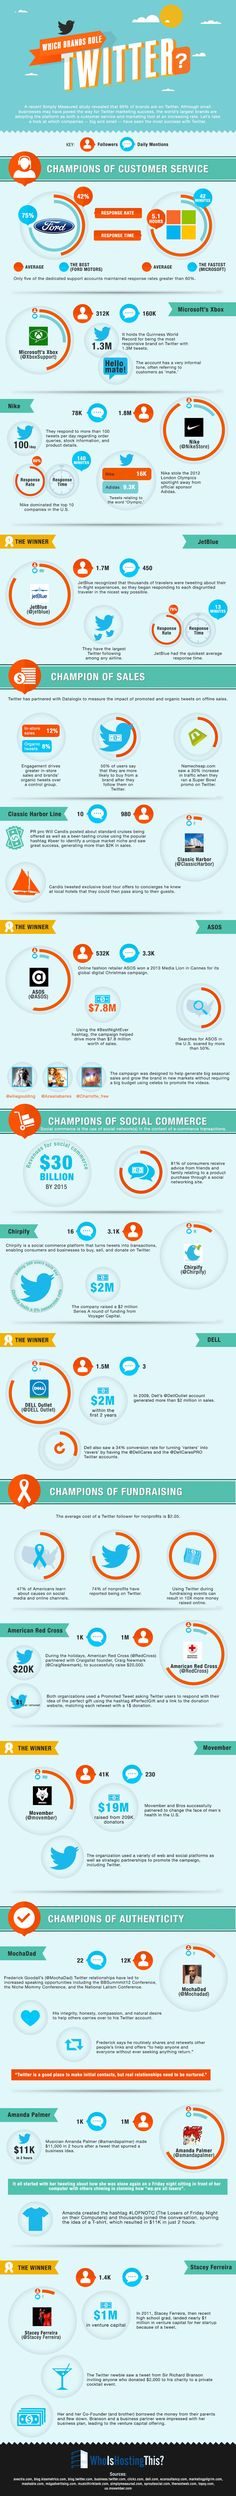 Which Brands Rule #Twitter - #infographic #socialmedia Back That Computer Up: Preventing Computer Disasters In The Age Of The Cloud